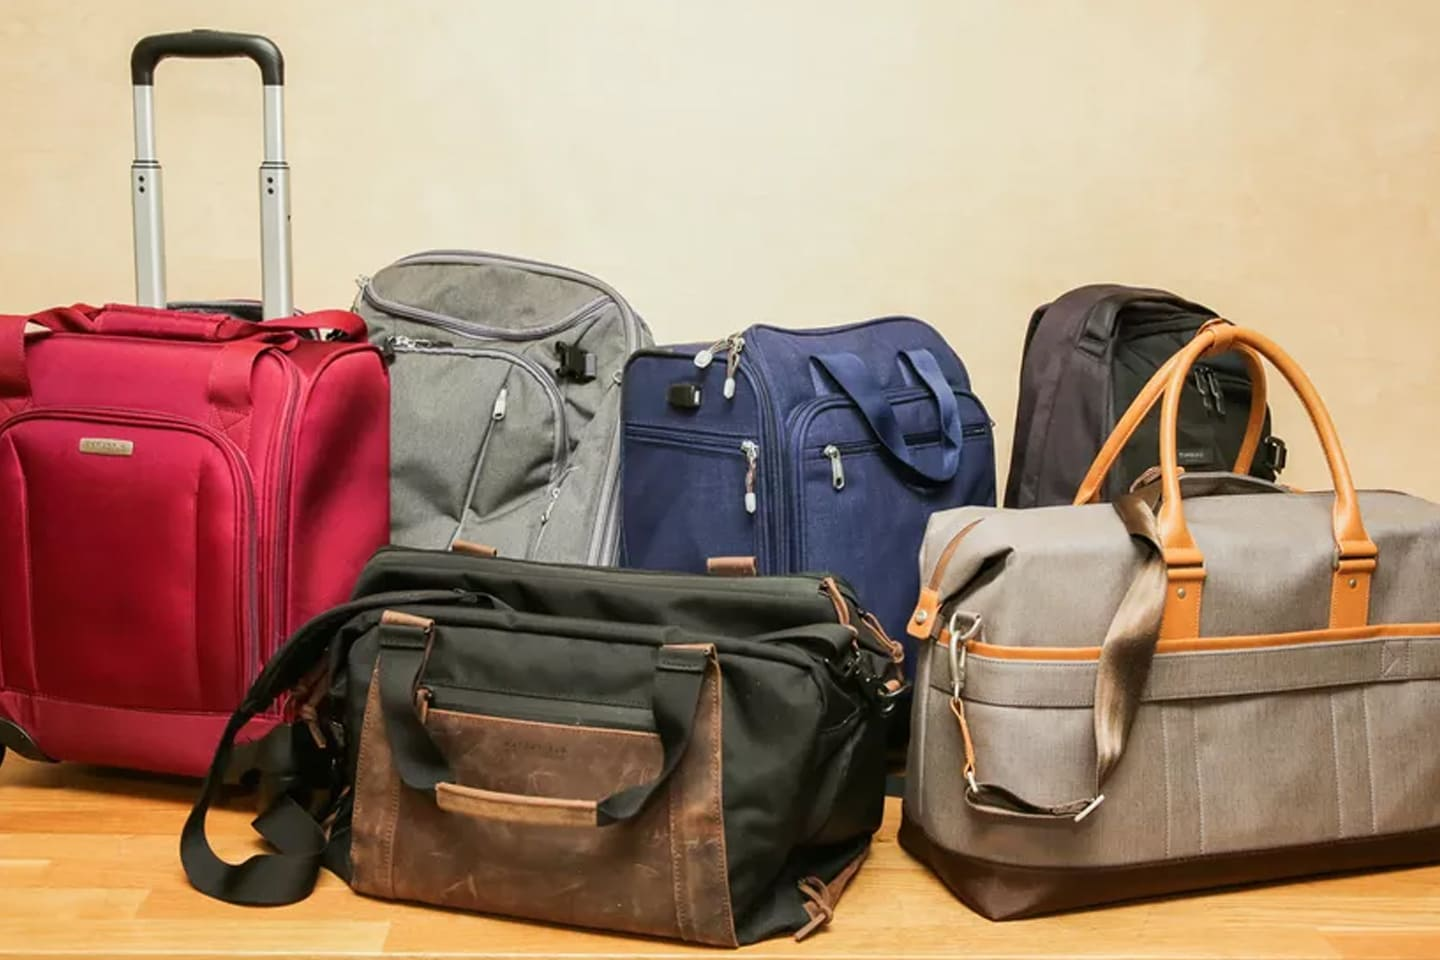 Save your lugggage in our Wide Storage. You will always feel safe with us.